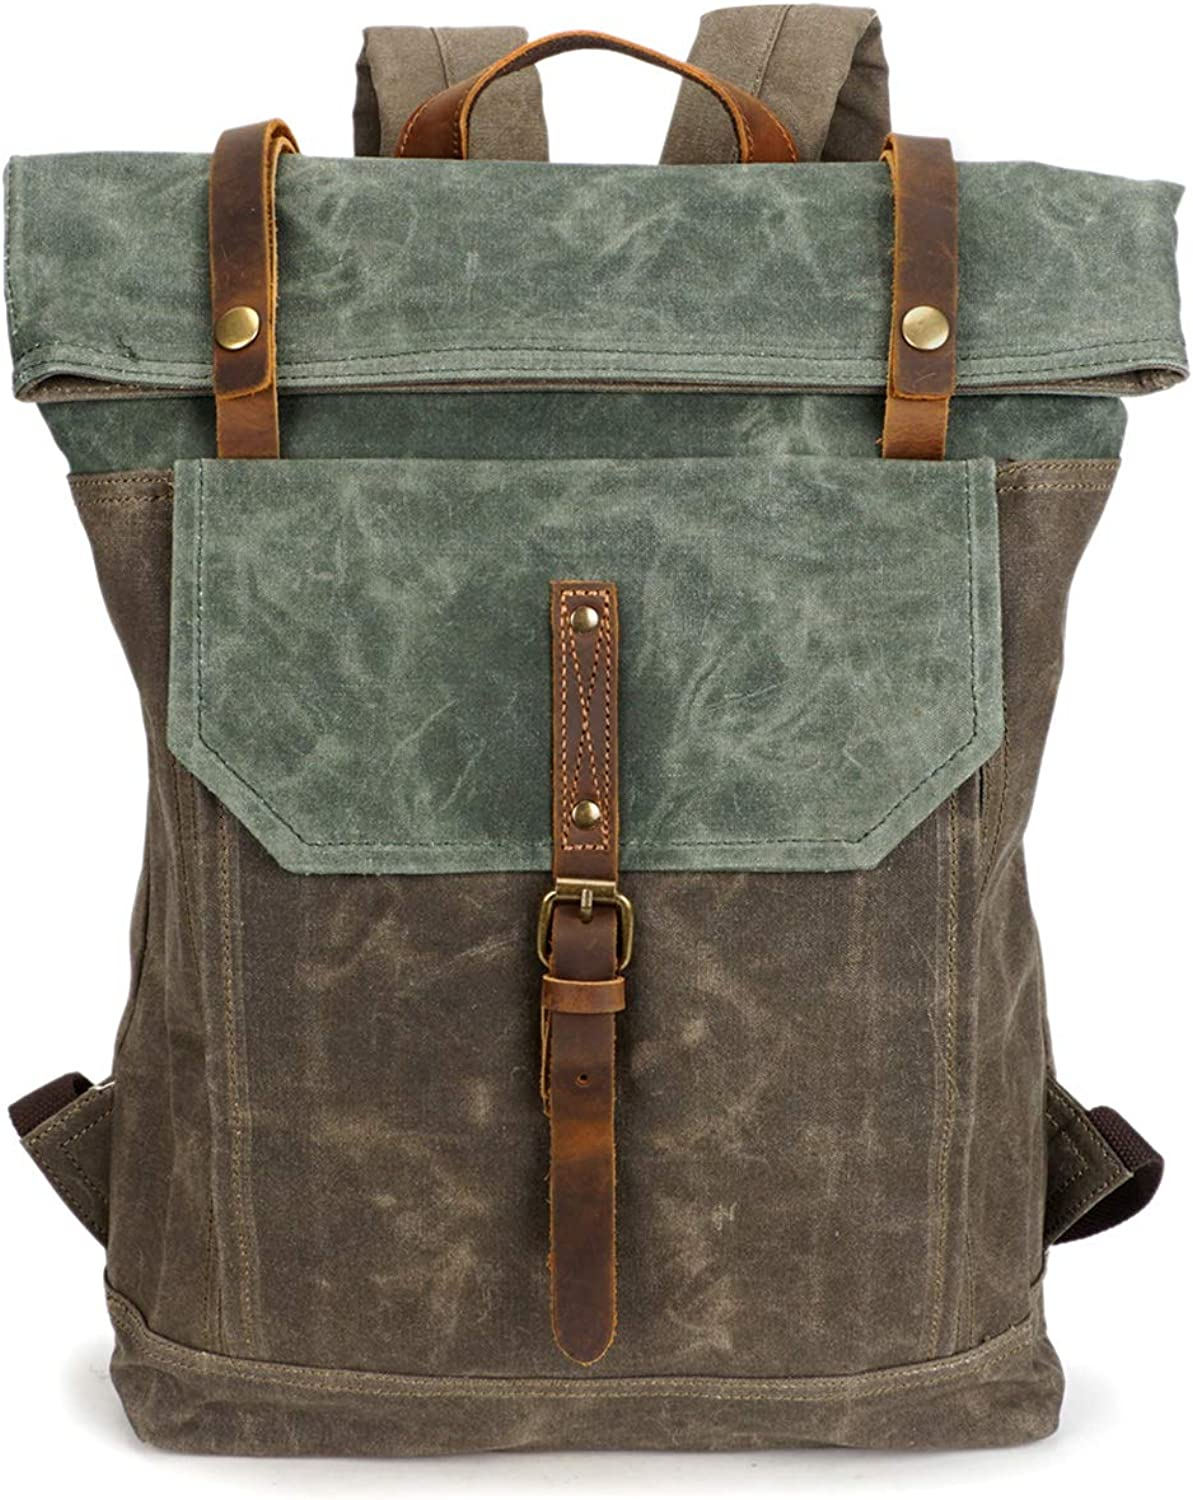 Waxed Canvas Rustic Backpack, Fintie Water Proof Roll Top Travel Hiking Rucksack Leather Daypack for School Work Men Women, Fits 17.3